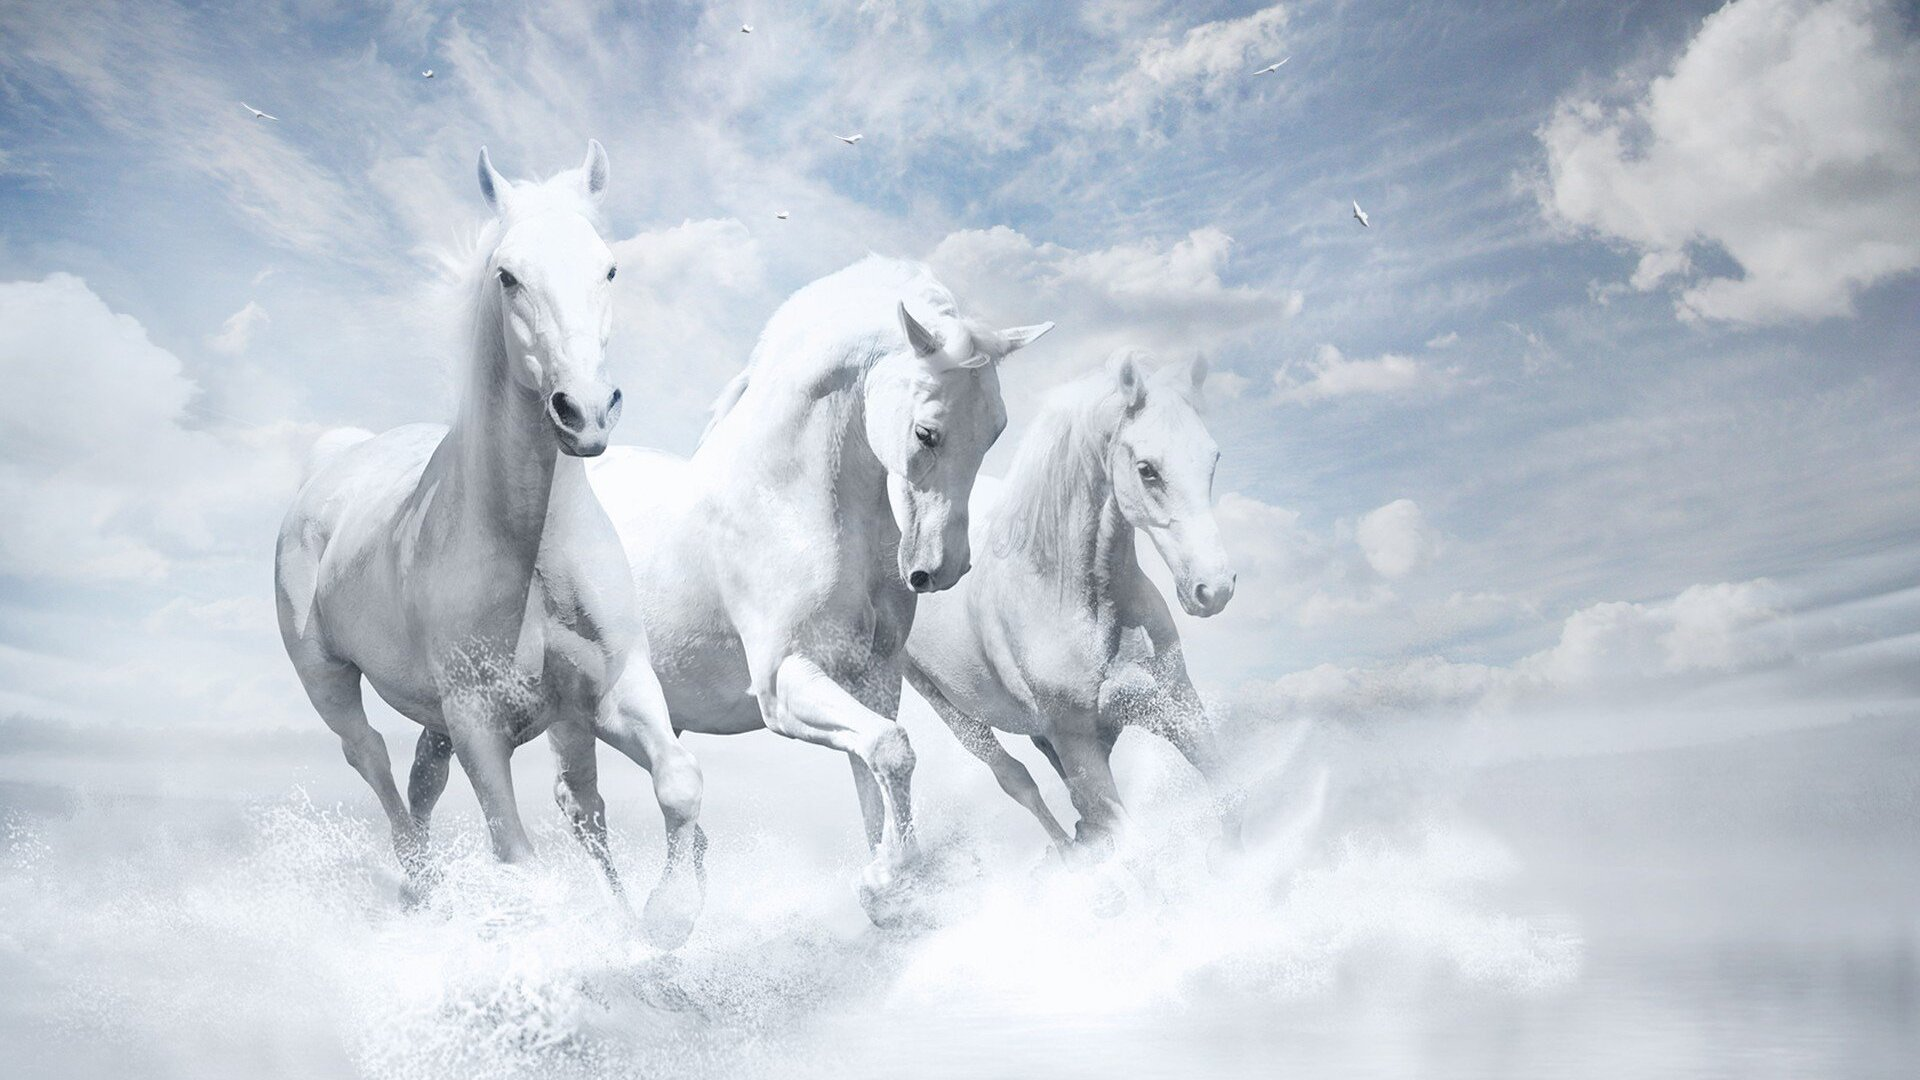 1920x1080 White Horses Hd Laptop Full Hd 1080p Hd 4k Wallpapers